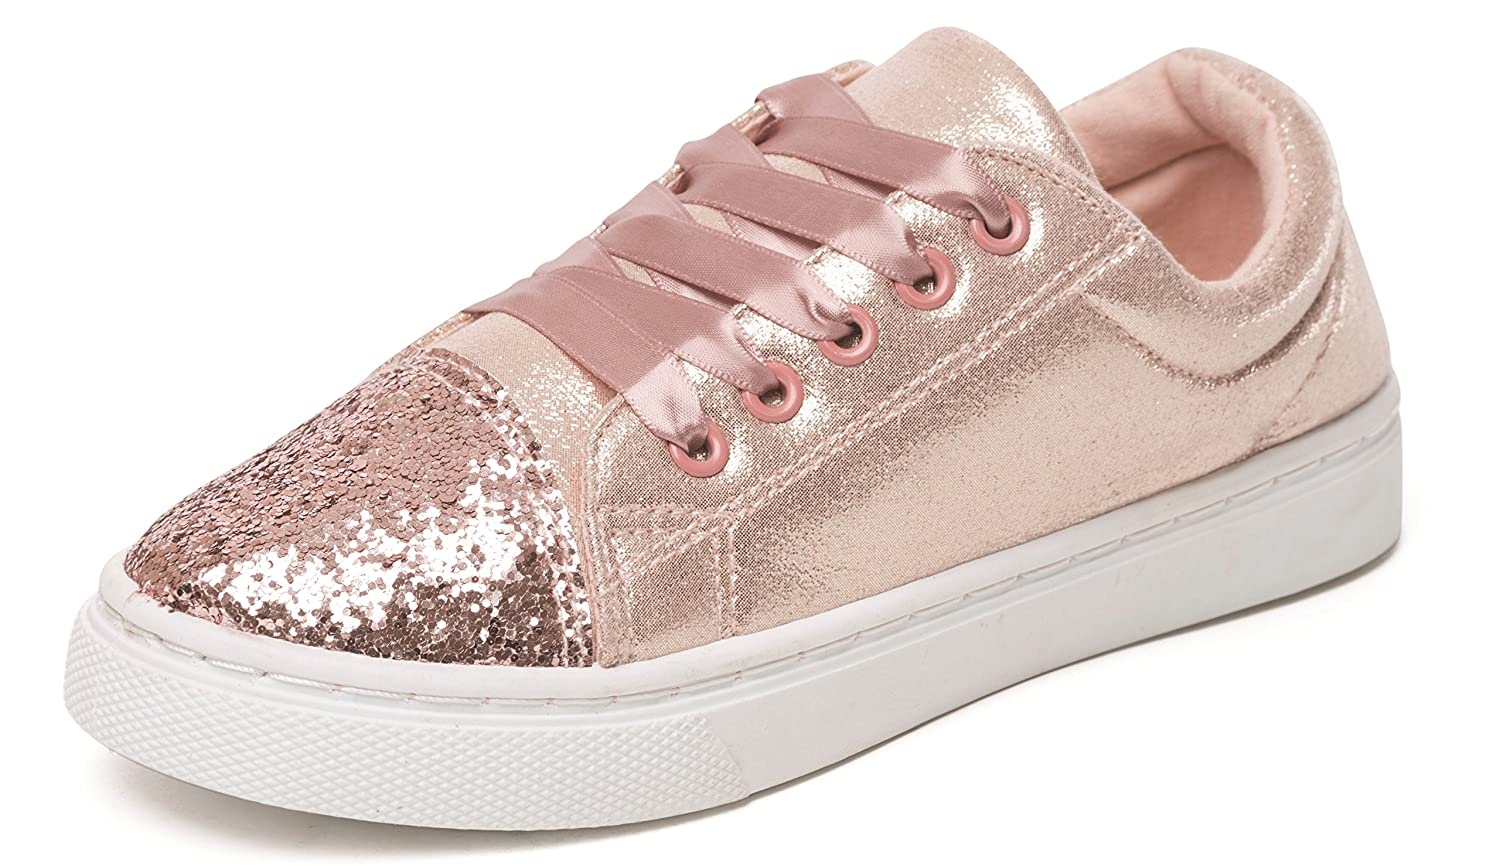 e8b288f7038c Chatterbox Girls Glitter Lace Up Trainers Pumps Silver Rose Gold UK Sizes  Child 10 11 12 13 1 2: Amazon.co.uk: Shoes & Bags